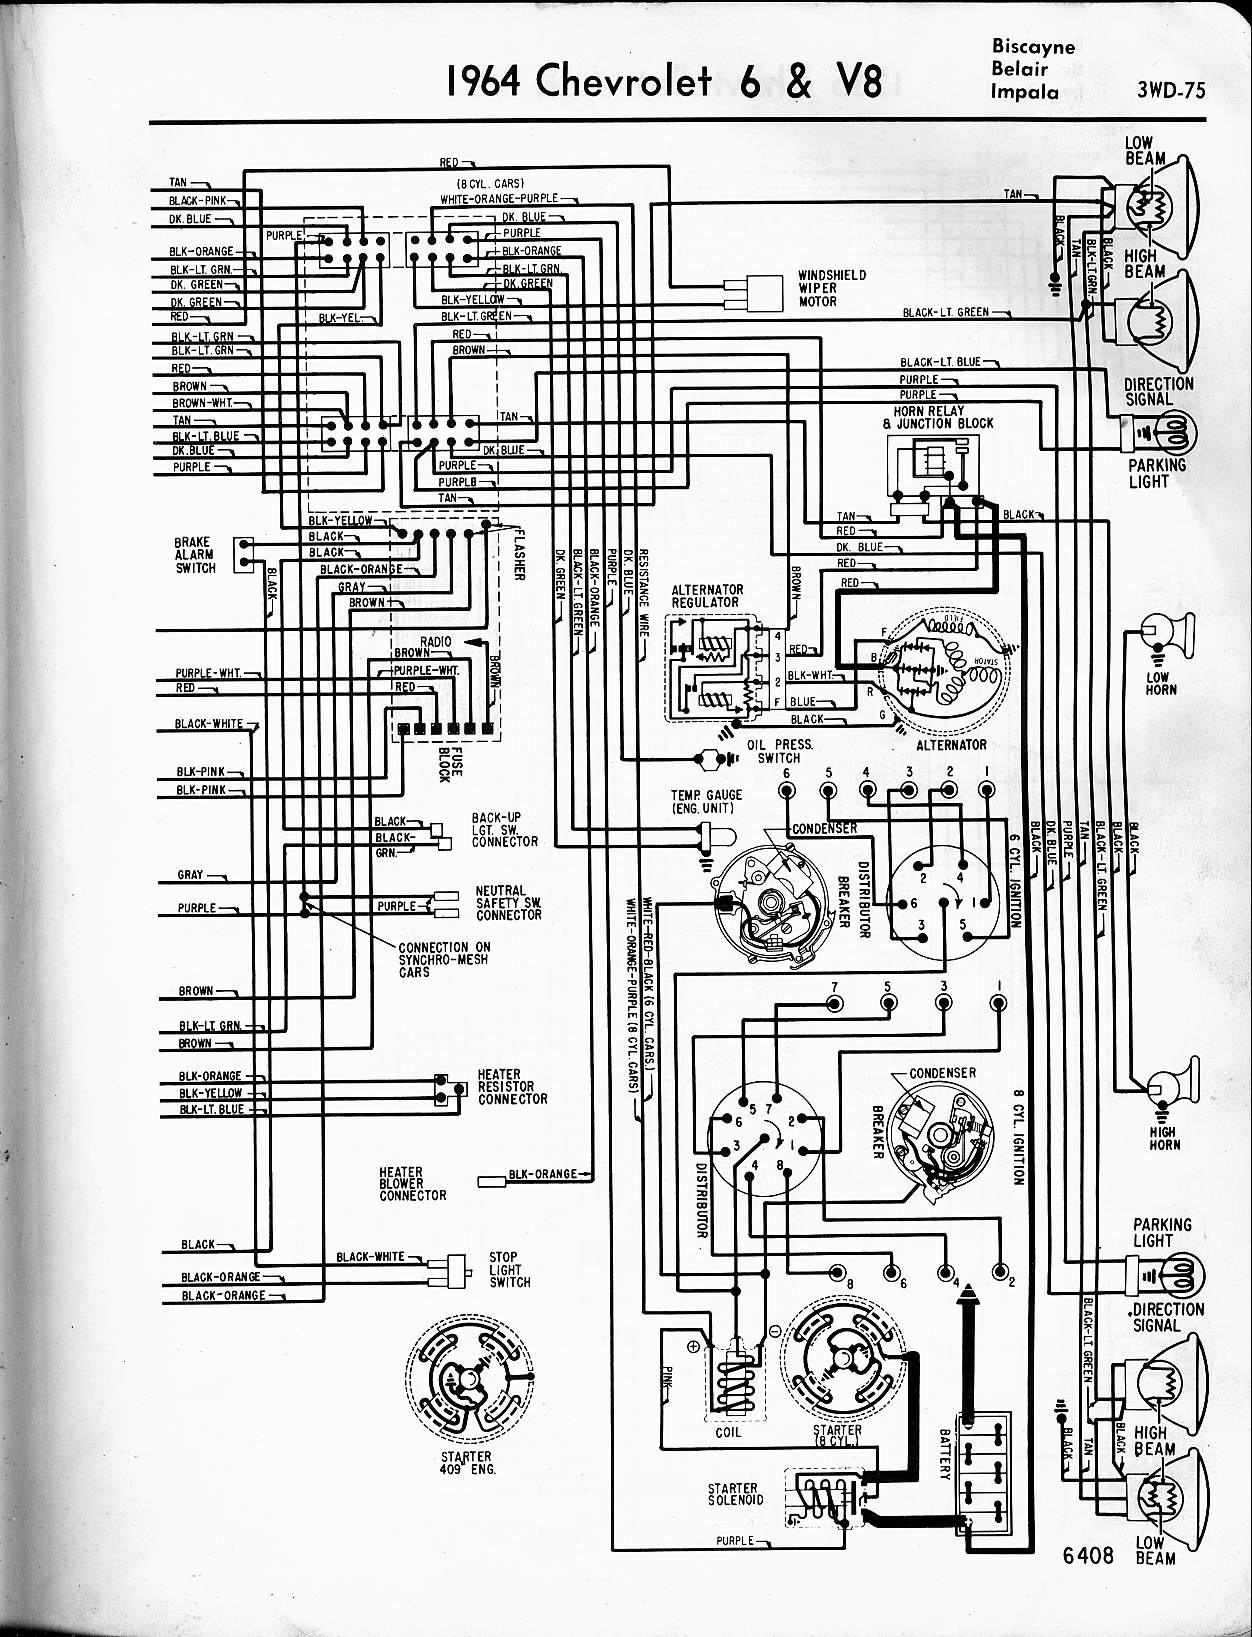 65 Chevy Truck Wiring Diagram Chevy Truck 1965 Engine Compartment